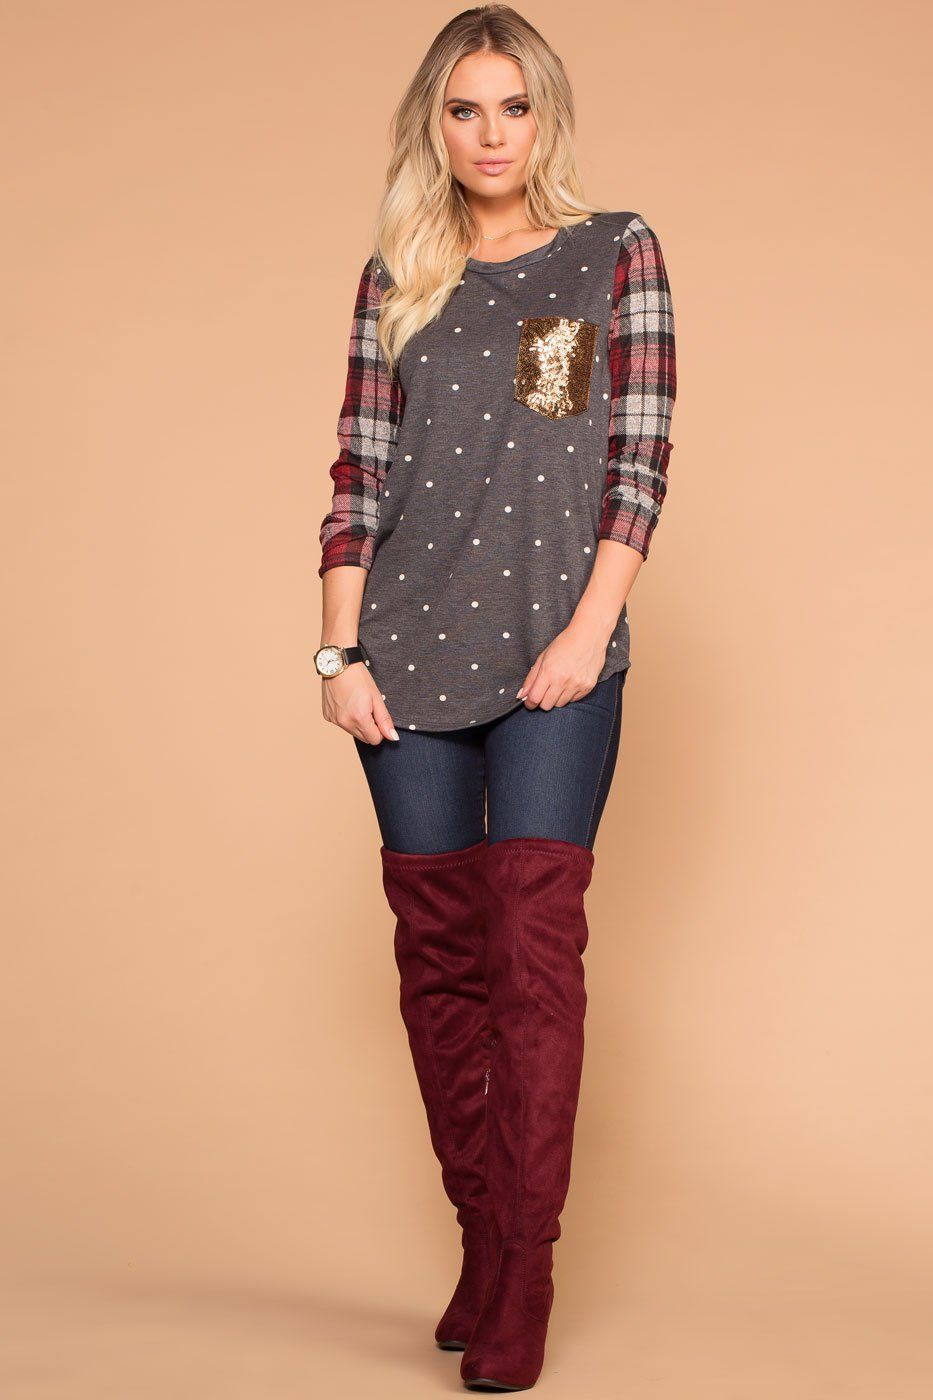 Priceless | Charcoal Polka Dot | Plaid | Sparkle Pocket Top | Womens